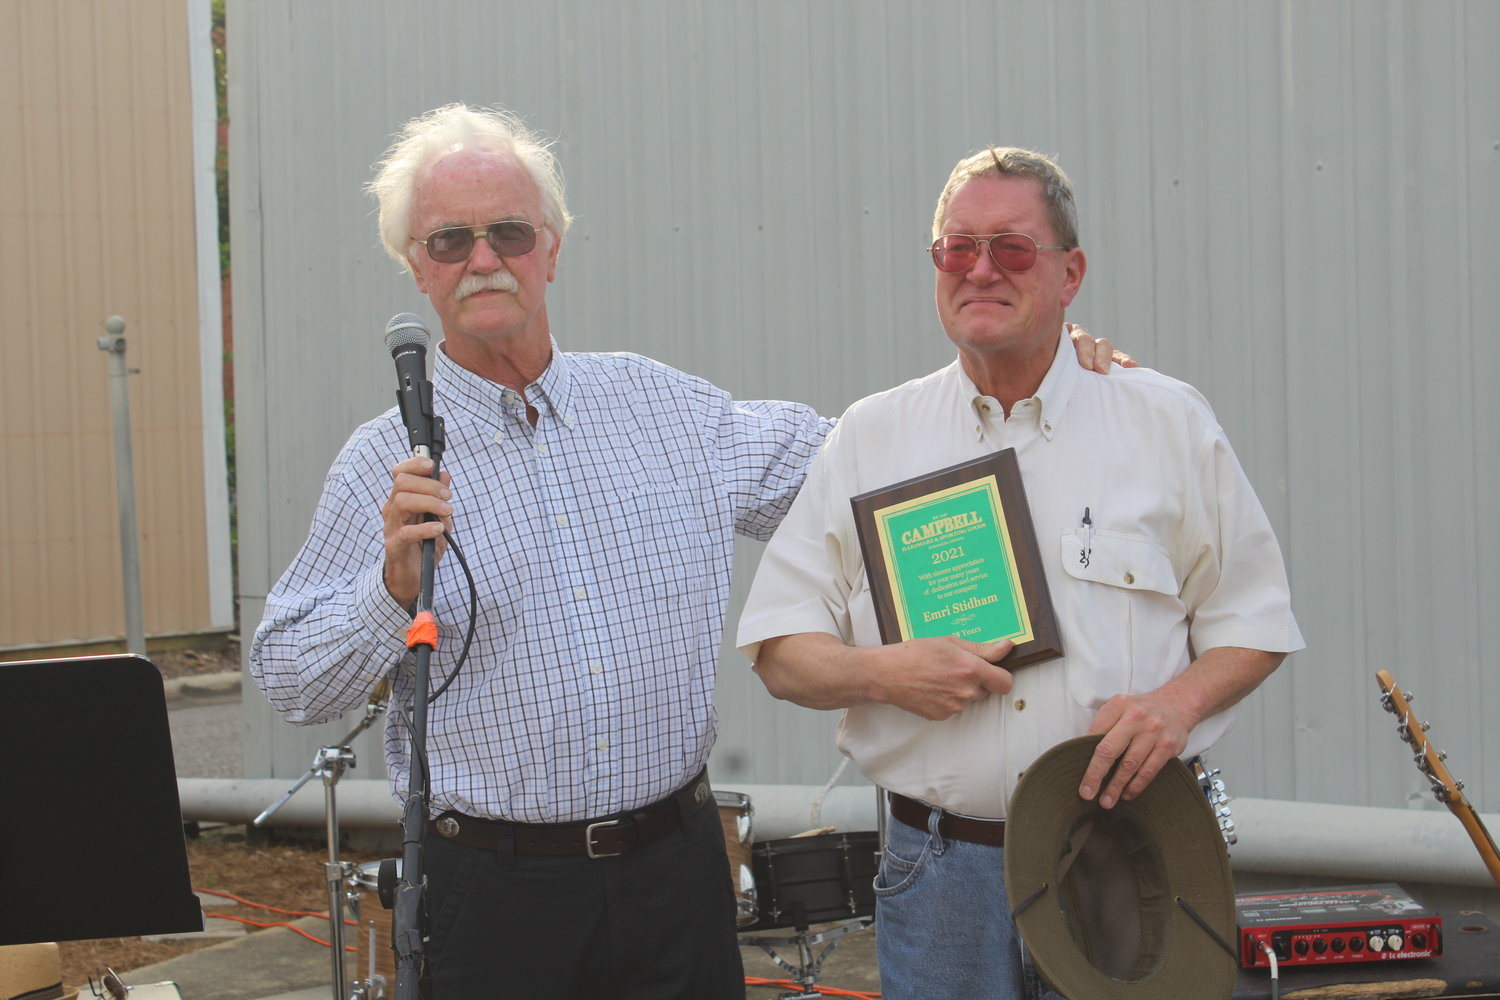 Nelson Wingo presents awards to longtime employee Emory Steadham.